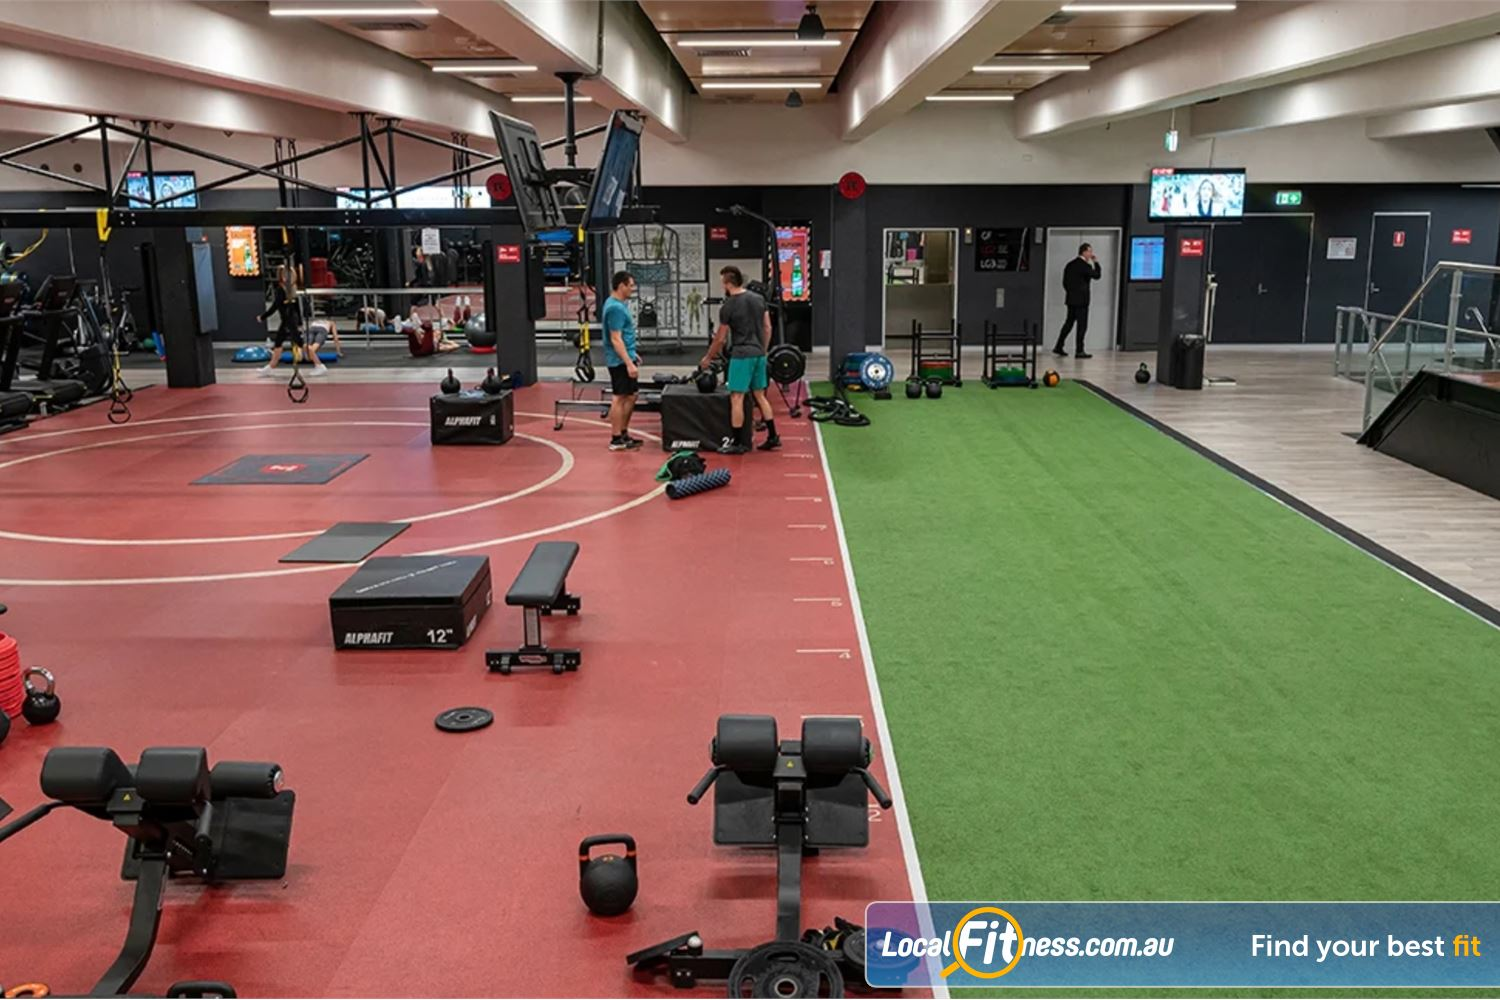 Fitness First Platinum George St. Sydney The Sydney freestyle area with TRX frame, indoor sled track and more.